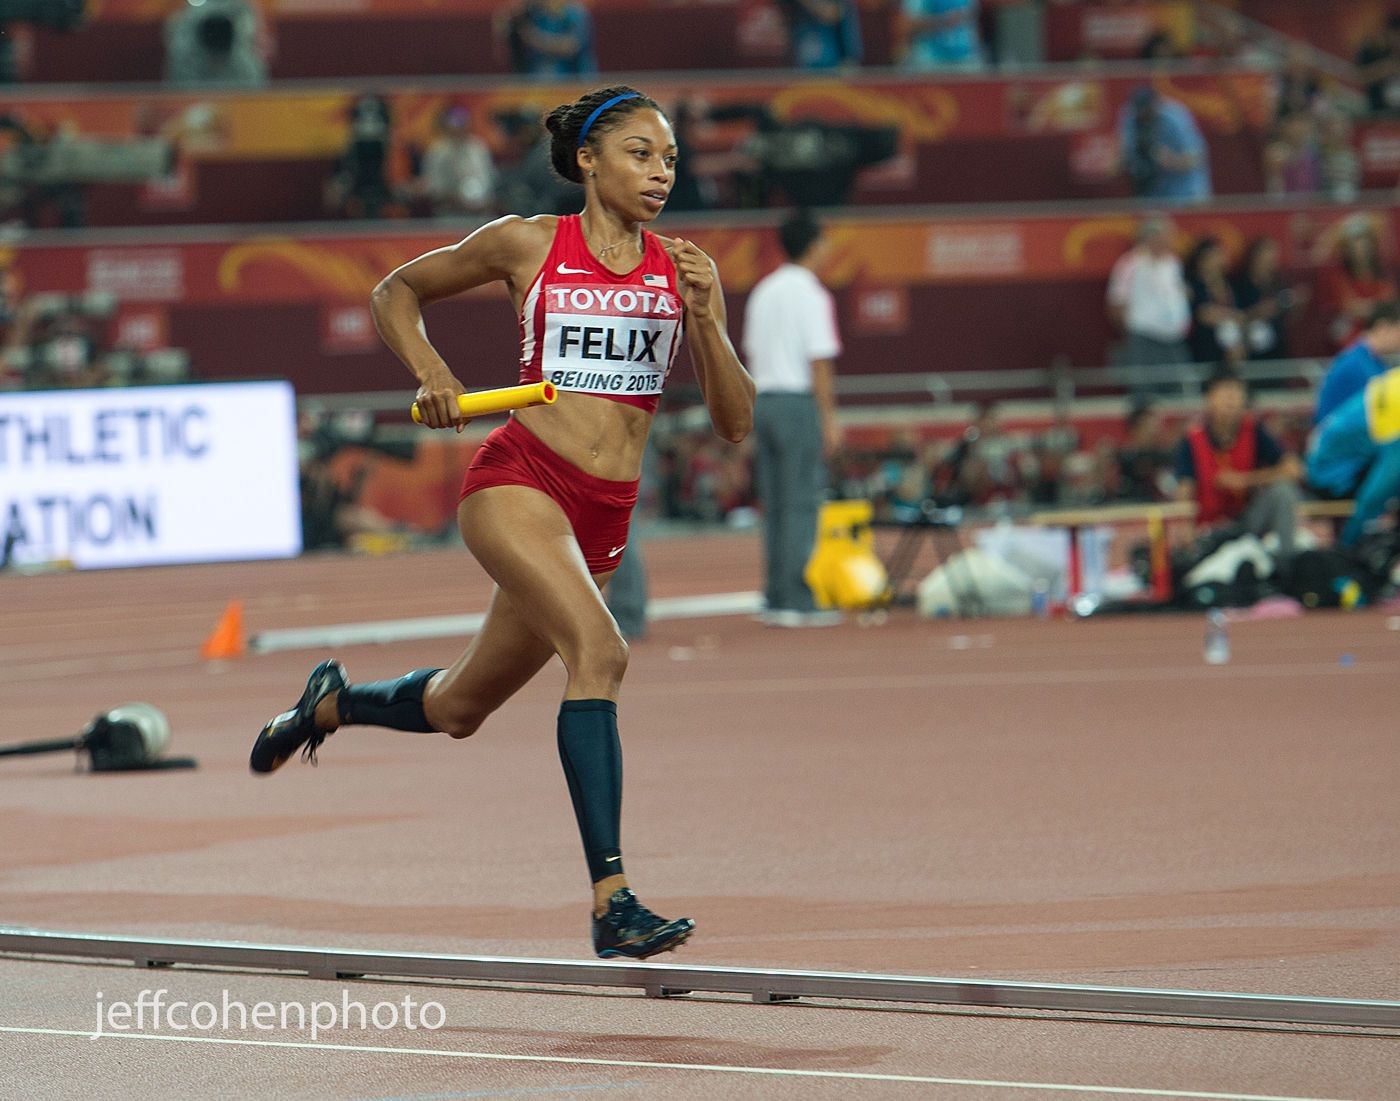 1beijing2015_night_9_felix_400relay_a_jeff_cohen_photo_35327_web.jpg